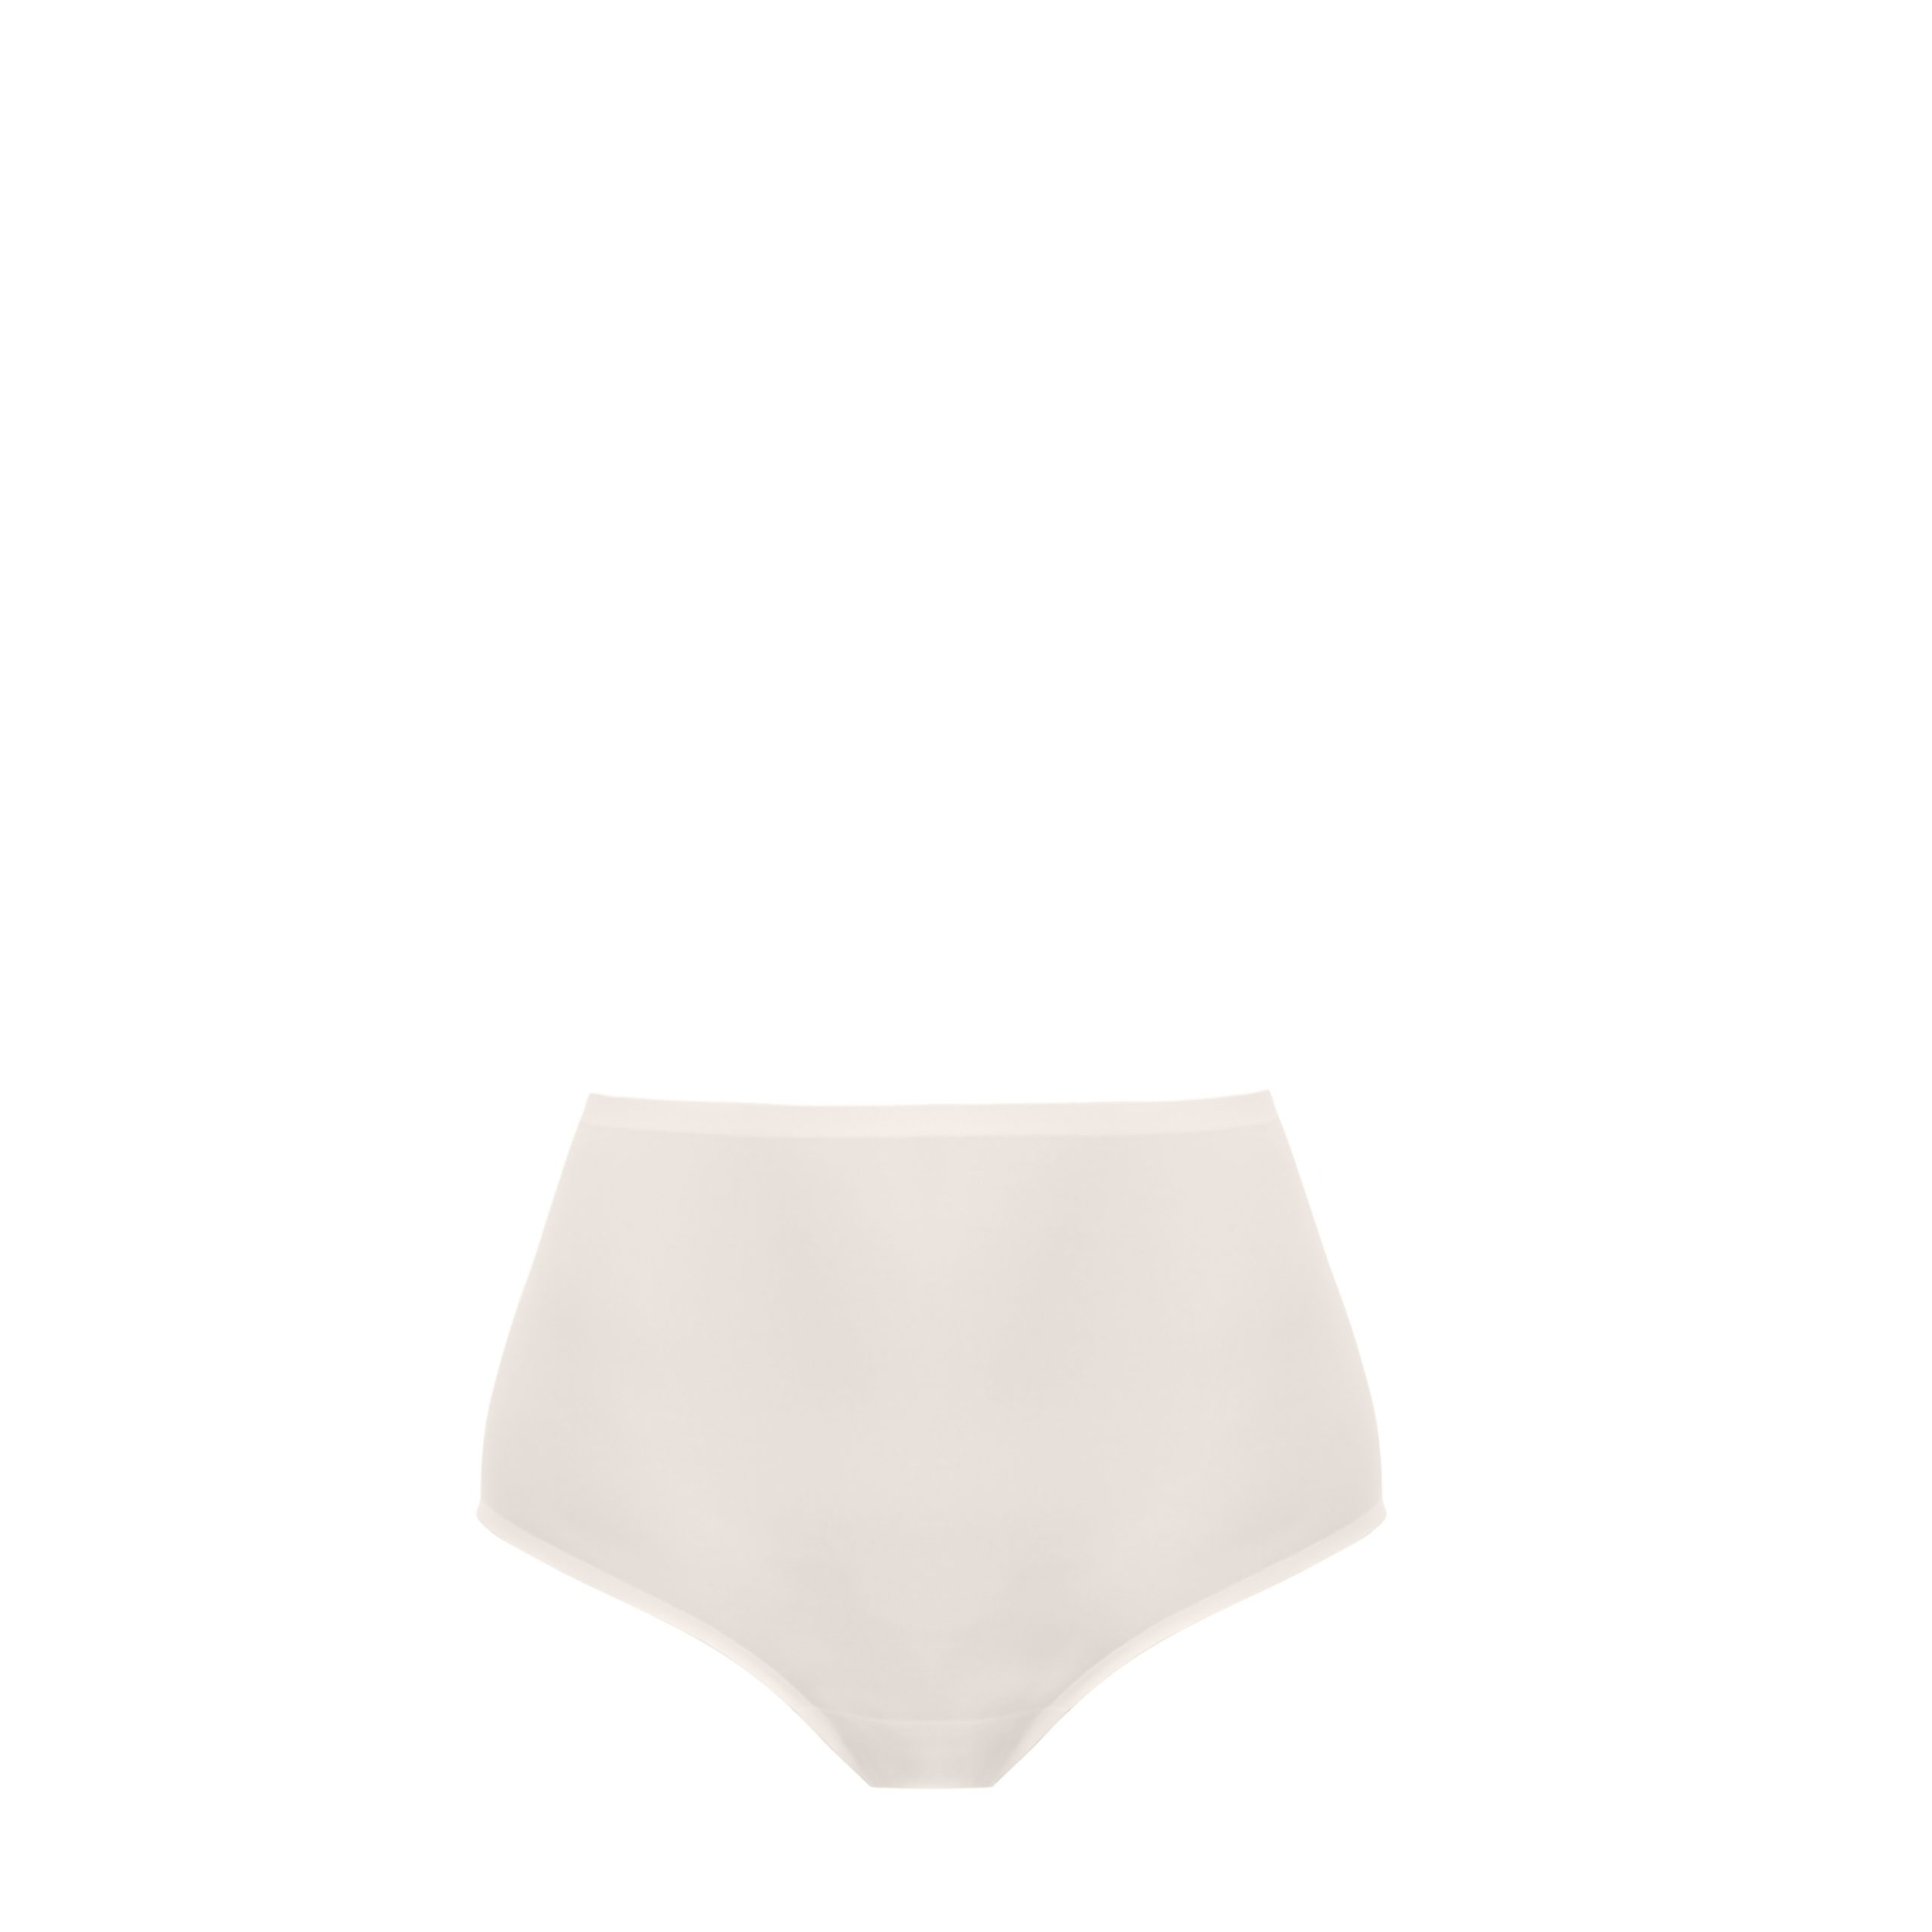 SMOOTHEASE INVISIBLE STRETCH FULL BRIEF IVORY